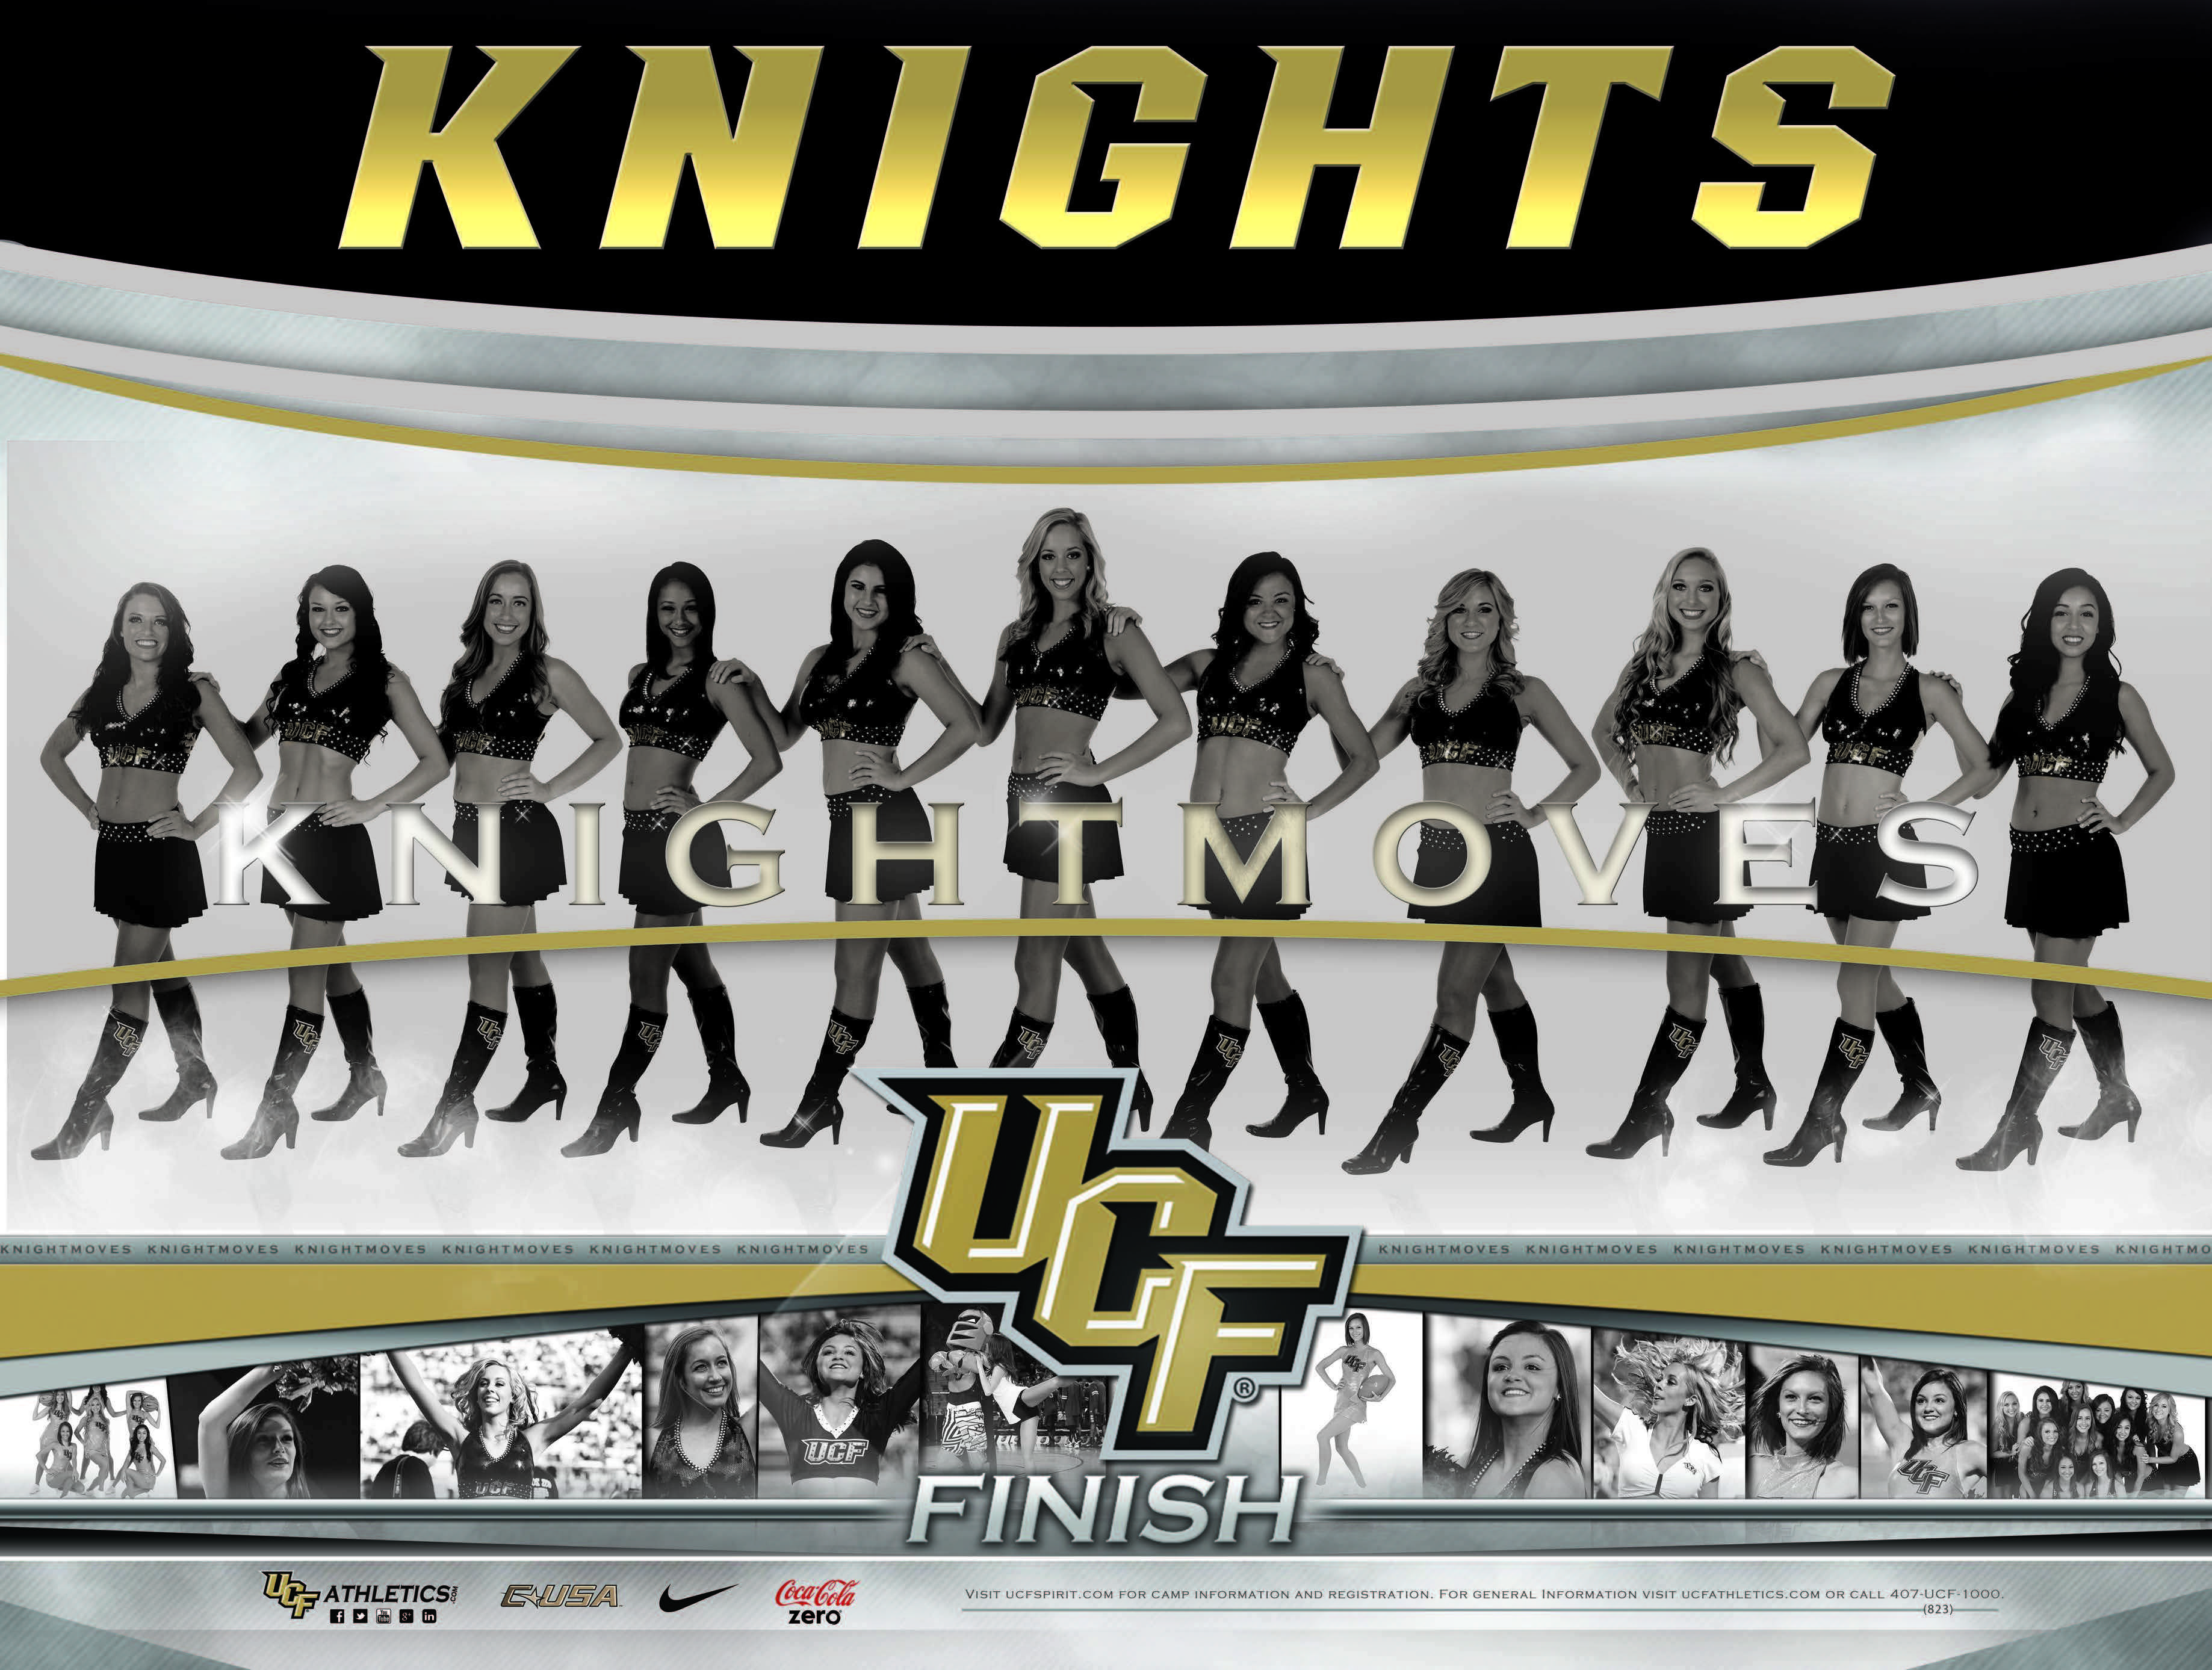 2012 13 Ucf Knightmoves Poster Cheer Poses Team Poster Ideas Team Photos